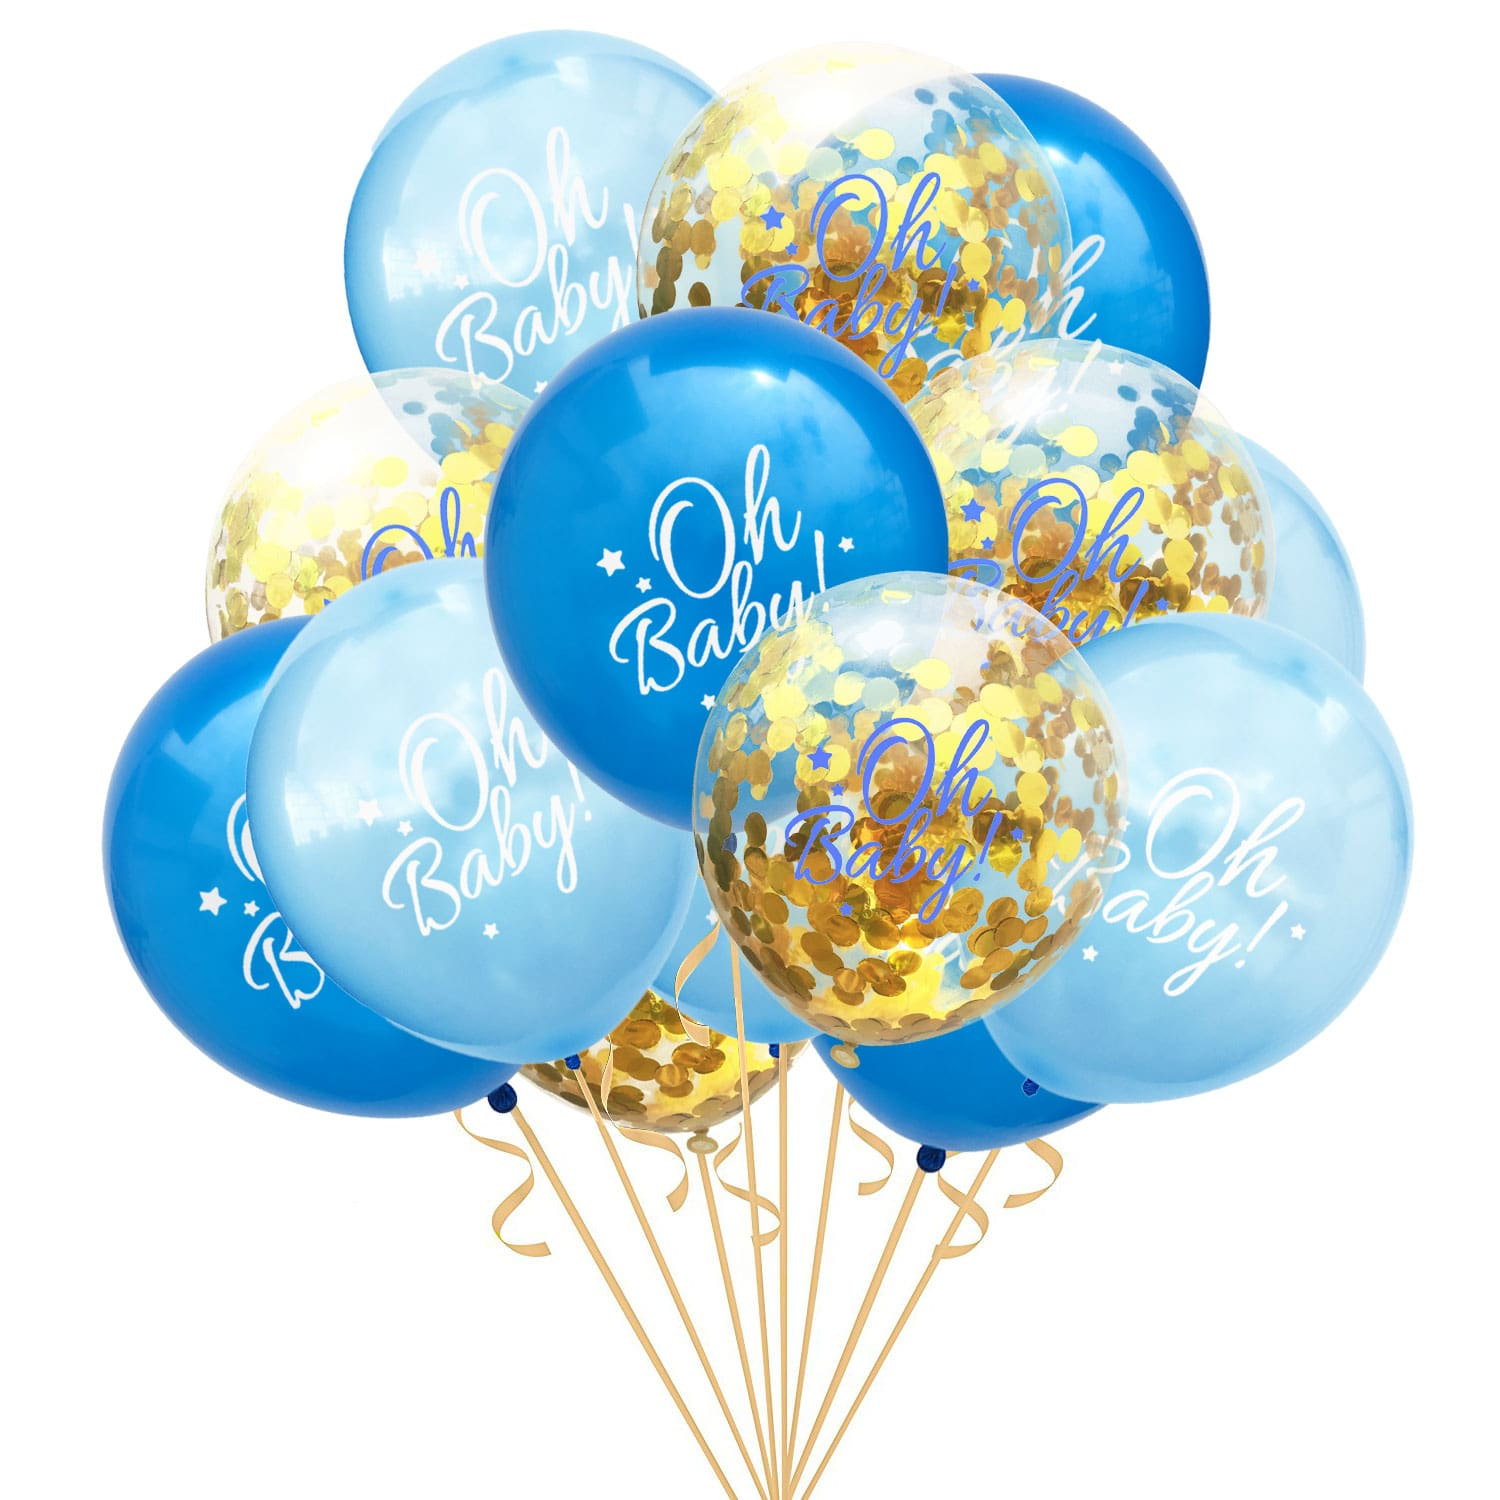 Babyparty Junge Konfetti Luftballon Set Für Baby Shower Party Junge 15 Deko Ballons Blau Gold